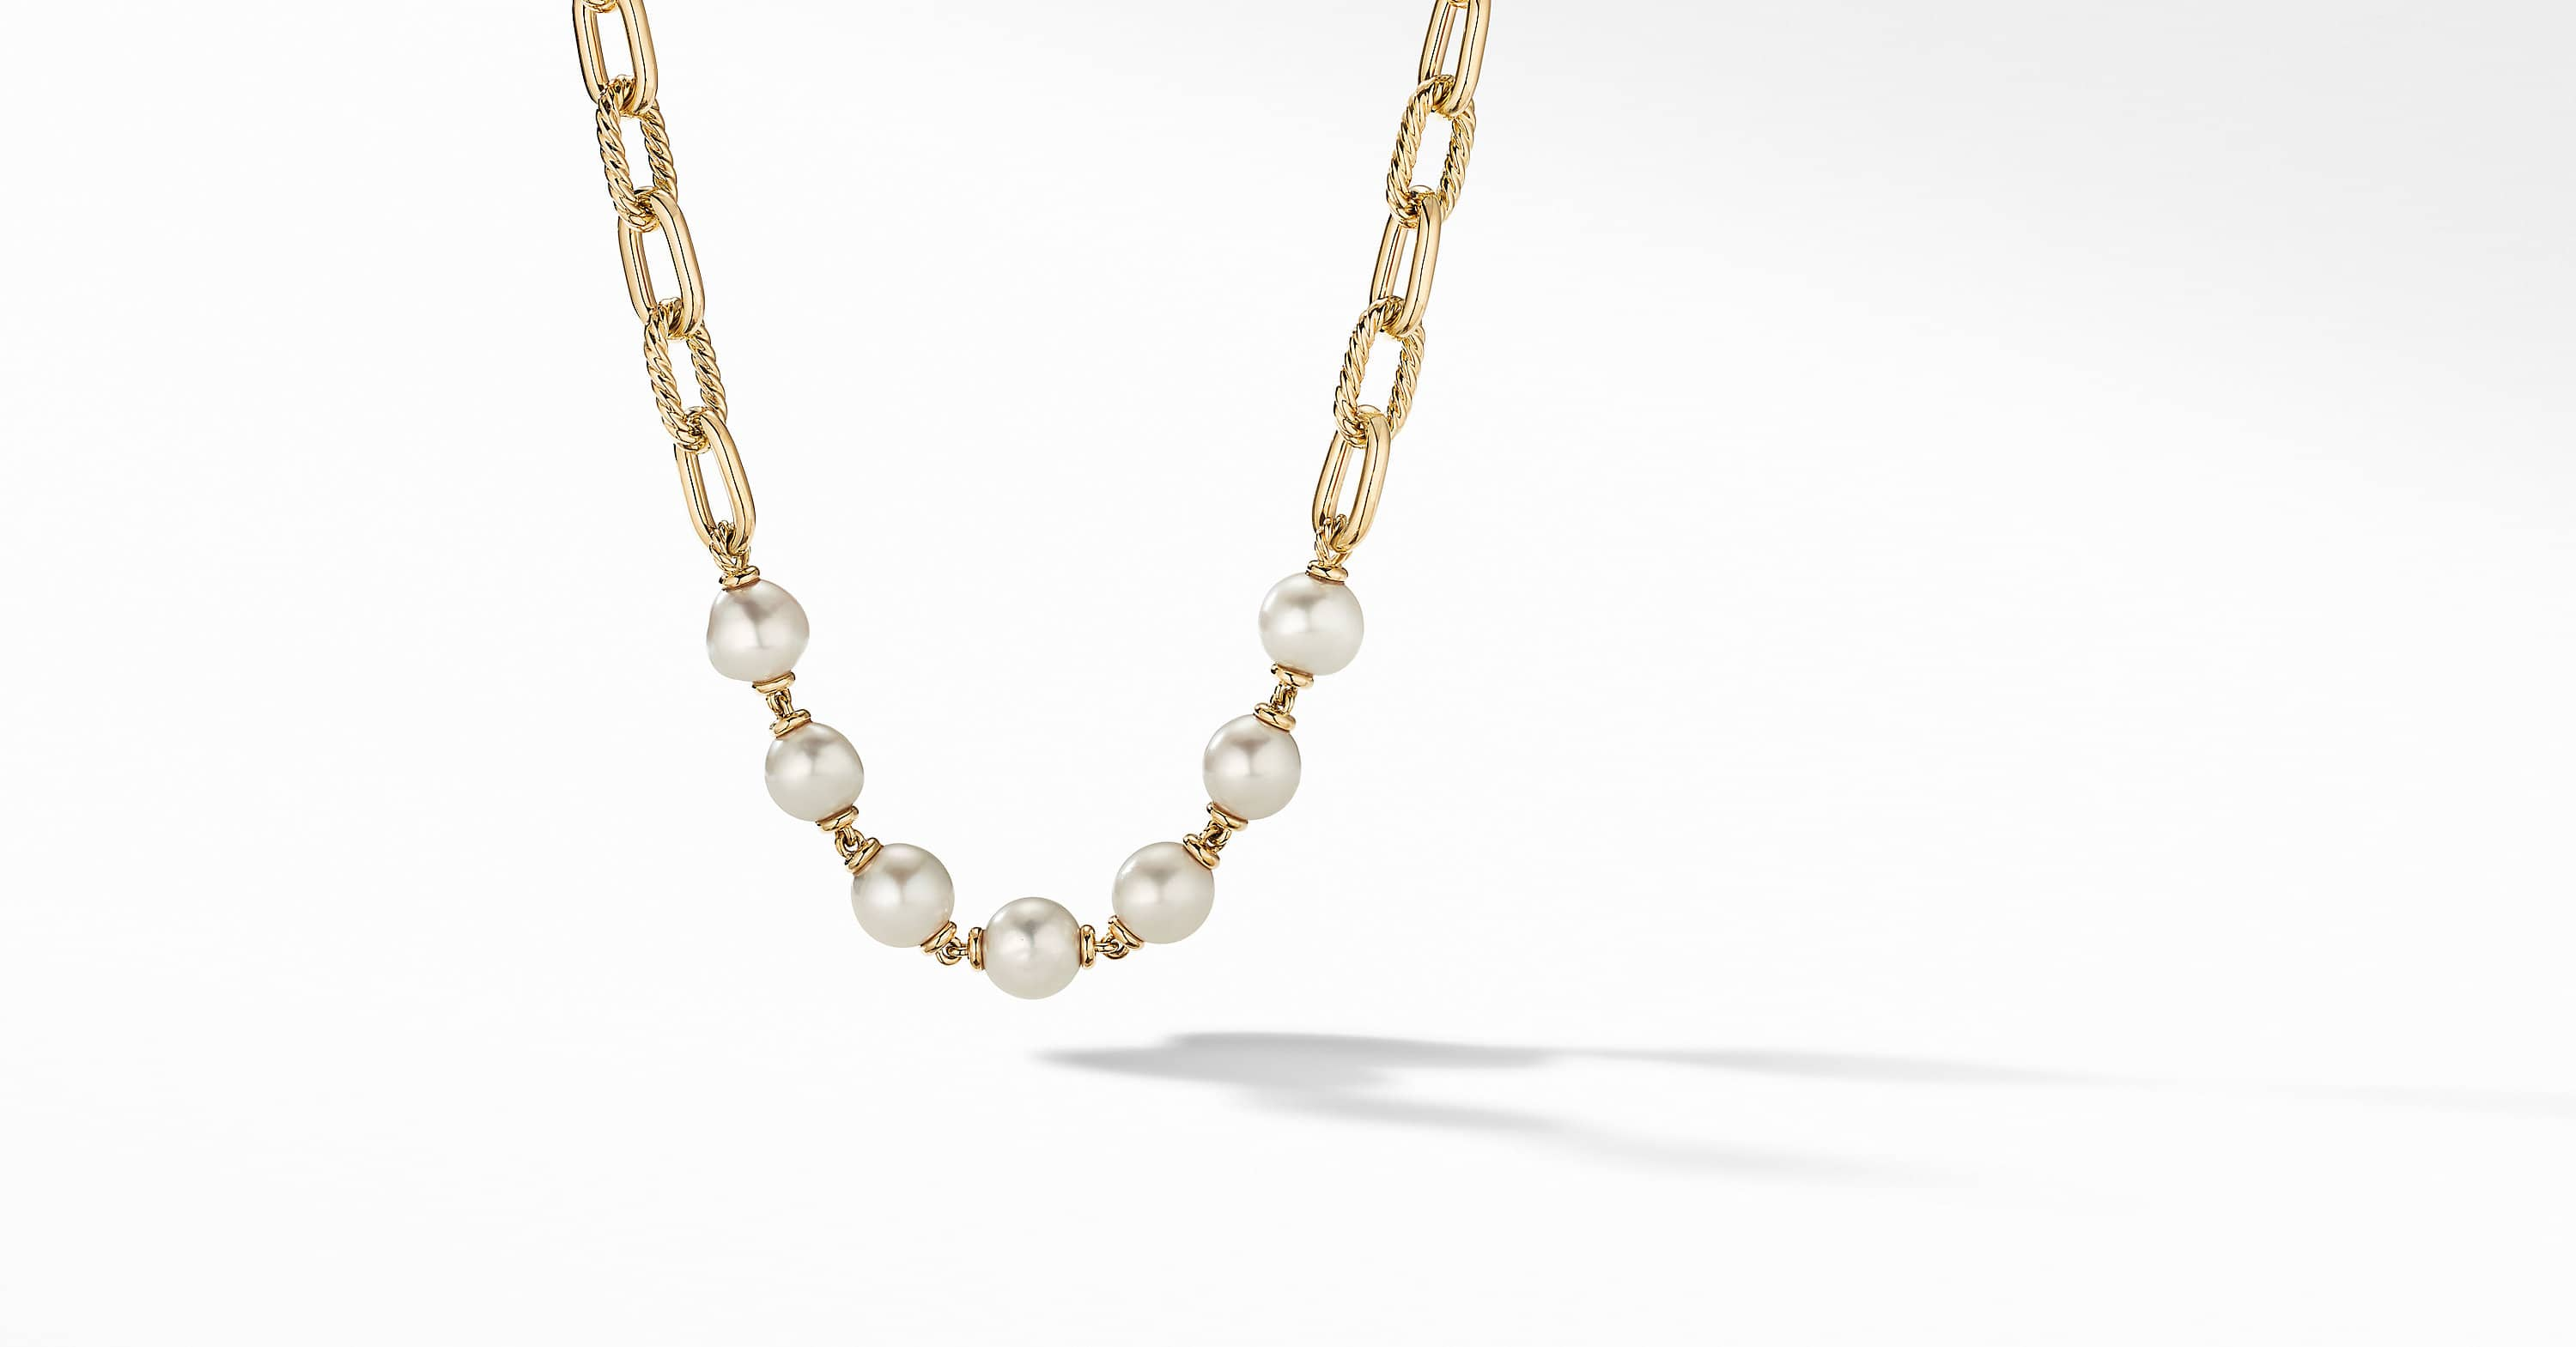 DY Madison Pearl Chain Necklace in 18K Yellow Gold, 11mm